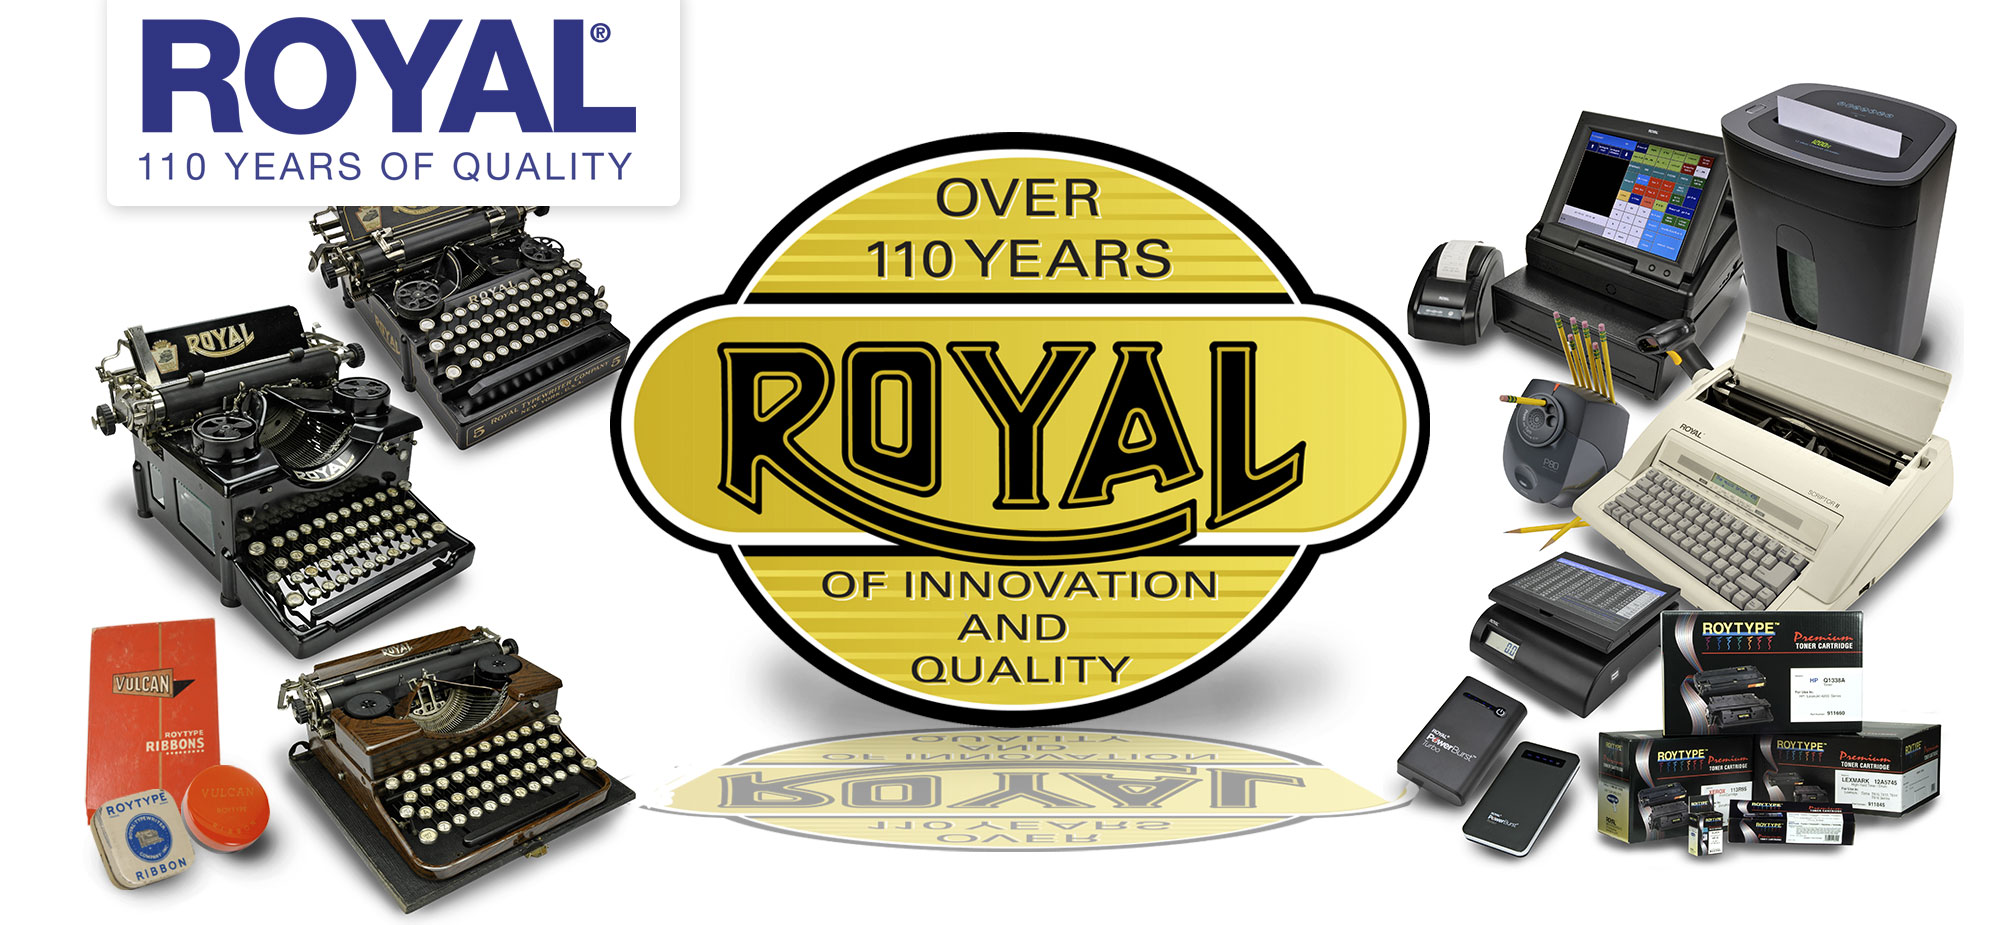 Over 110 years of Innovation and Quality |Royal Consumer Information Products